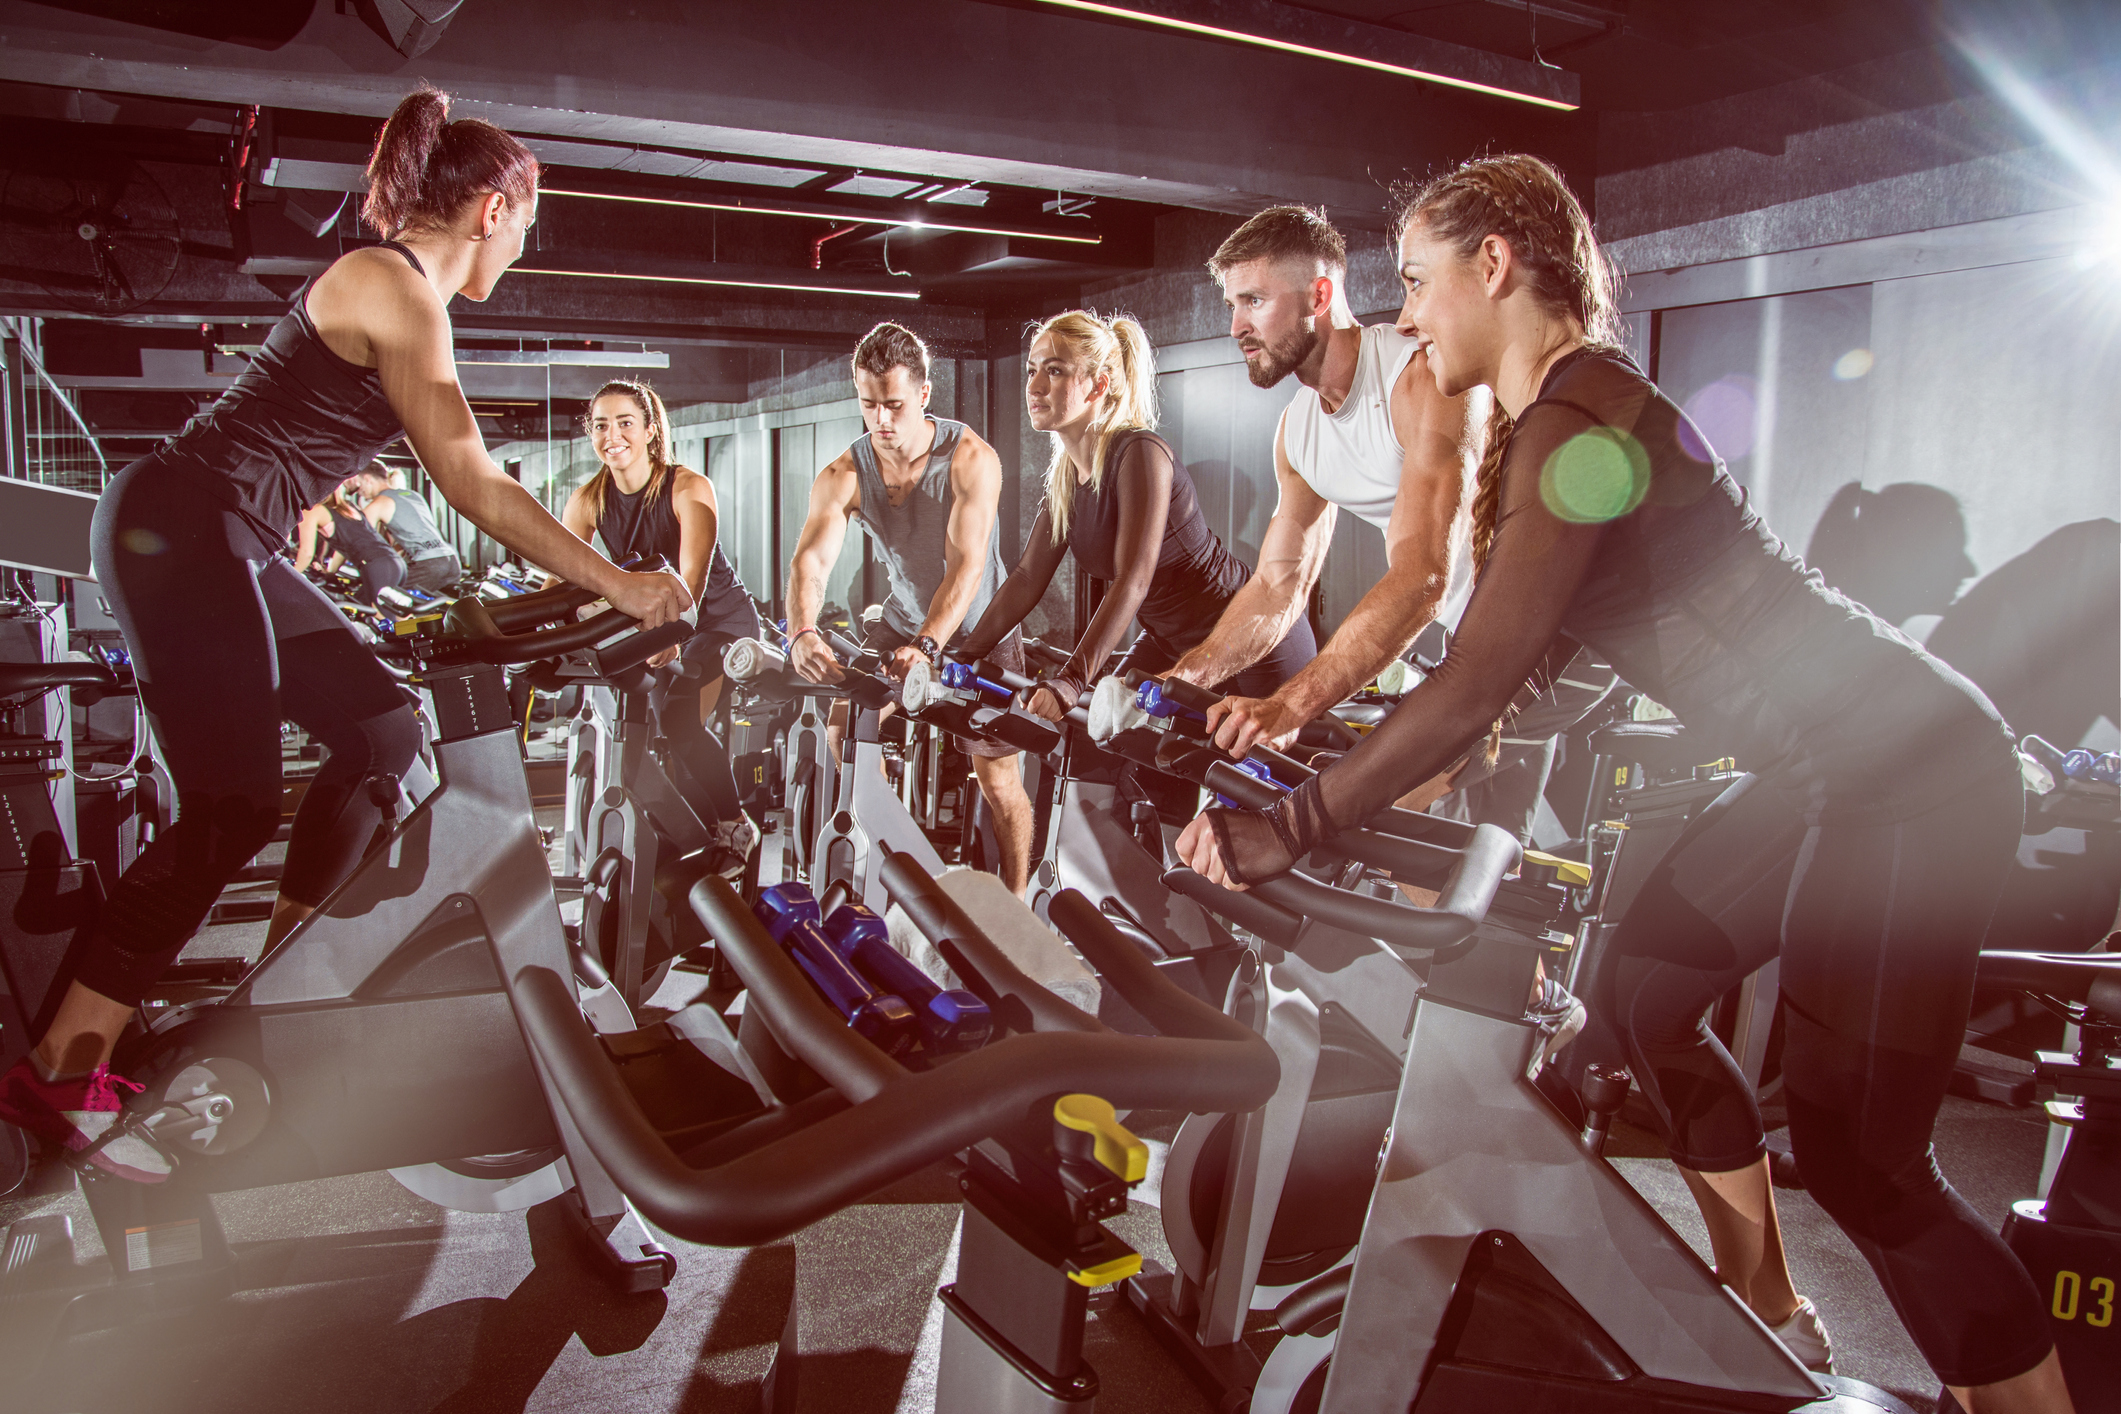 Gym franchise infringement case study with Lauth Investigations